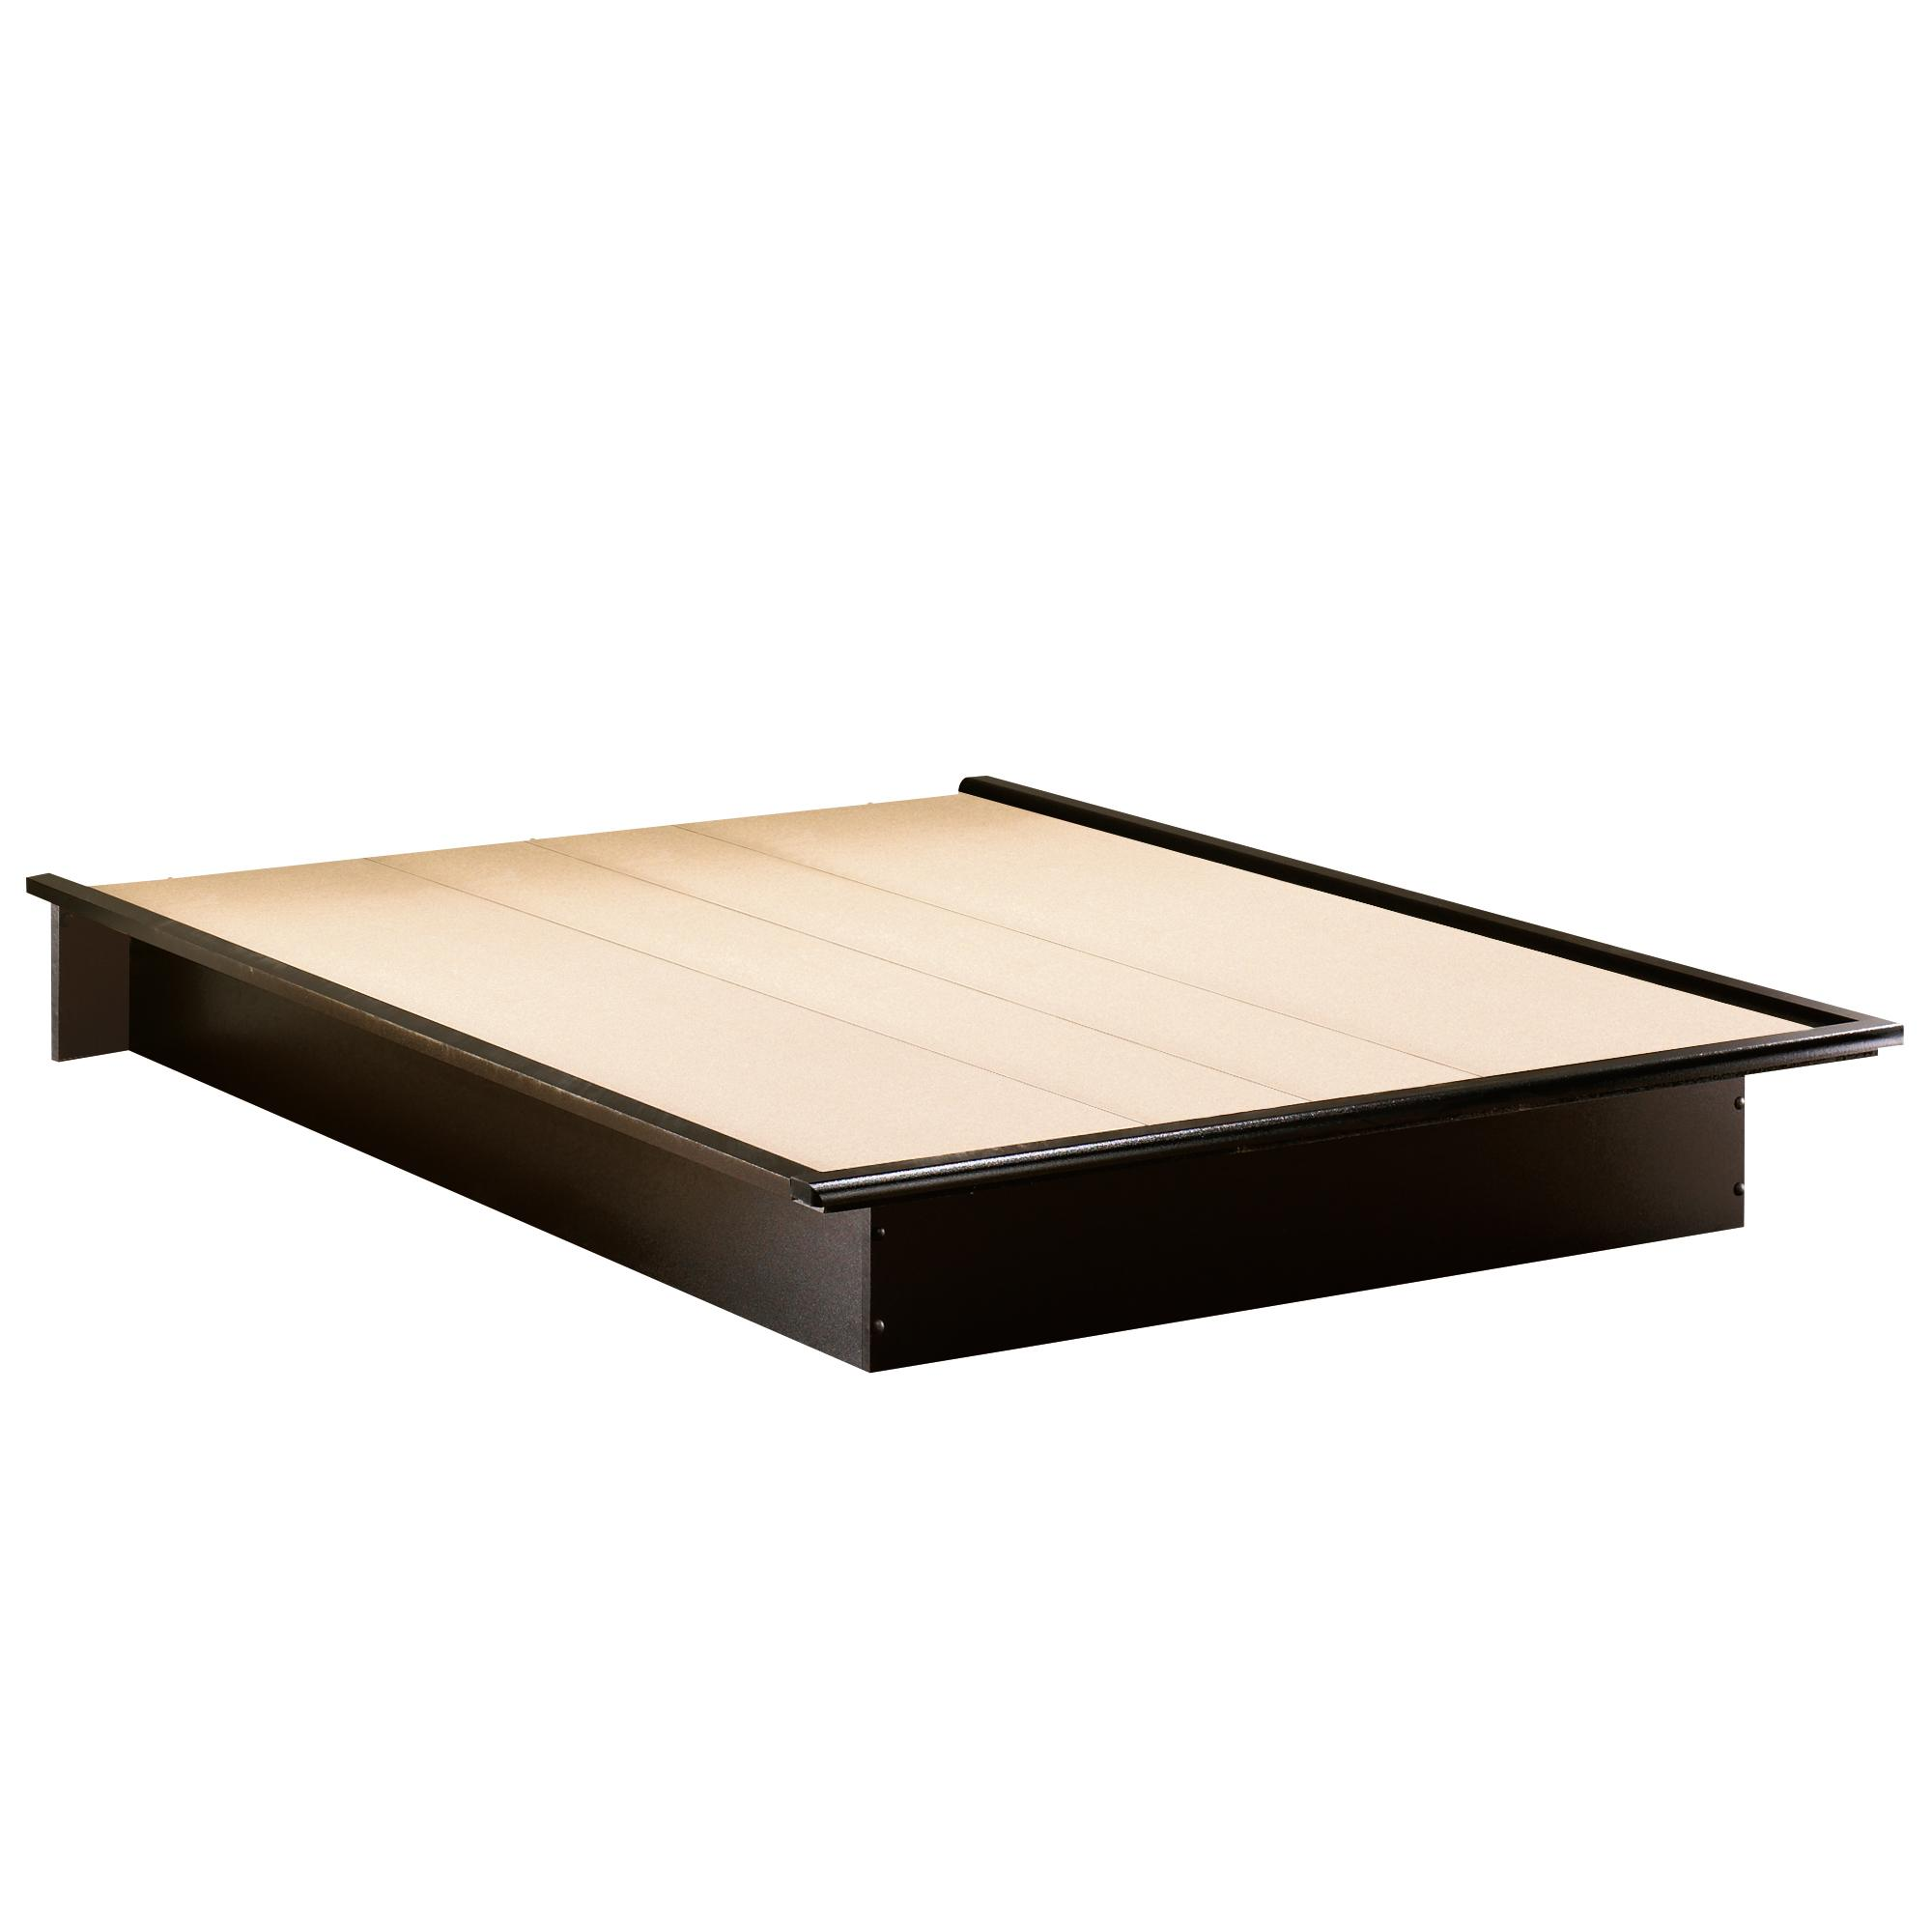 beds gt full queen size maple platform bed frame with storage drawers